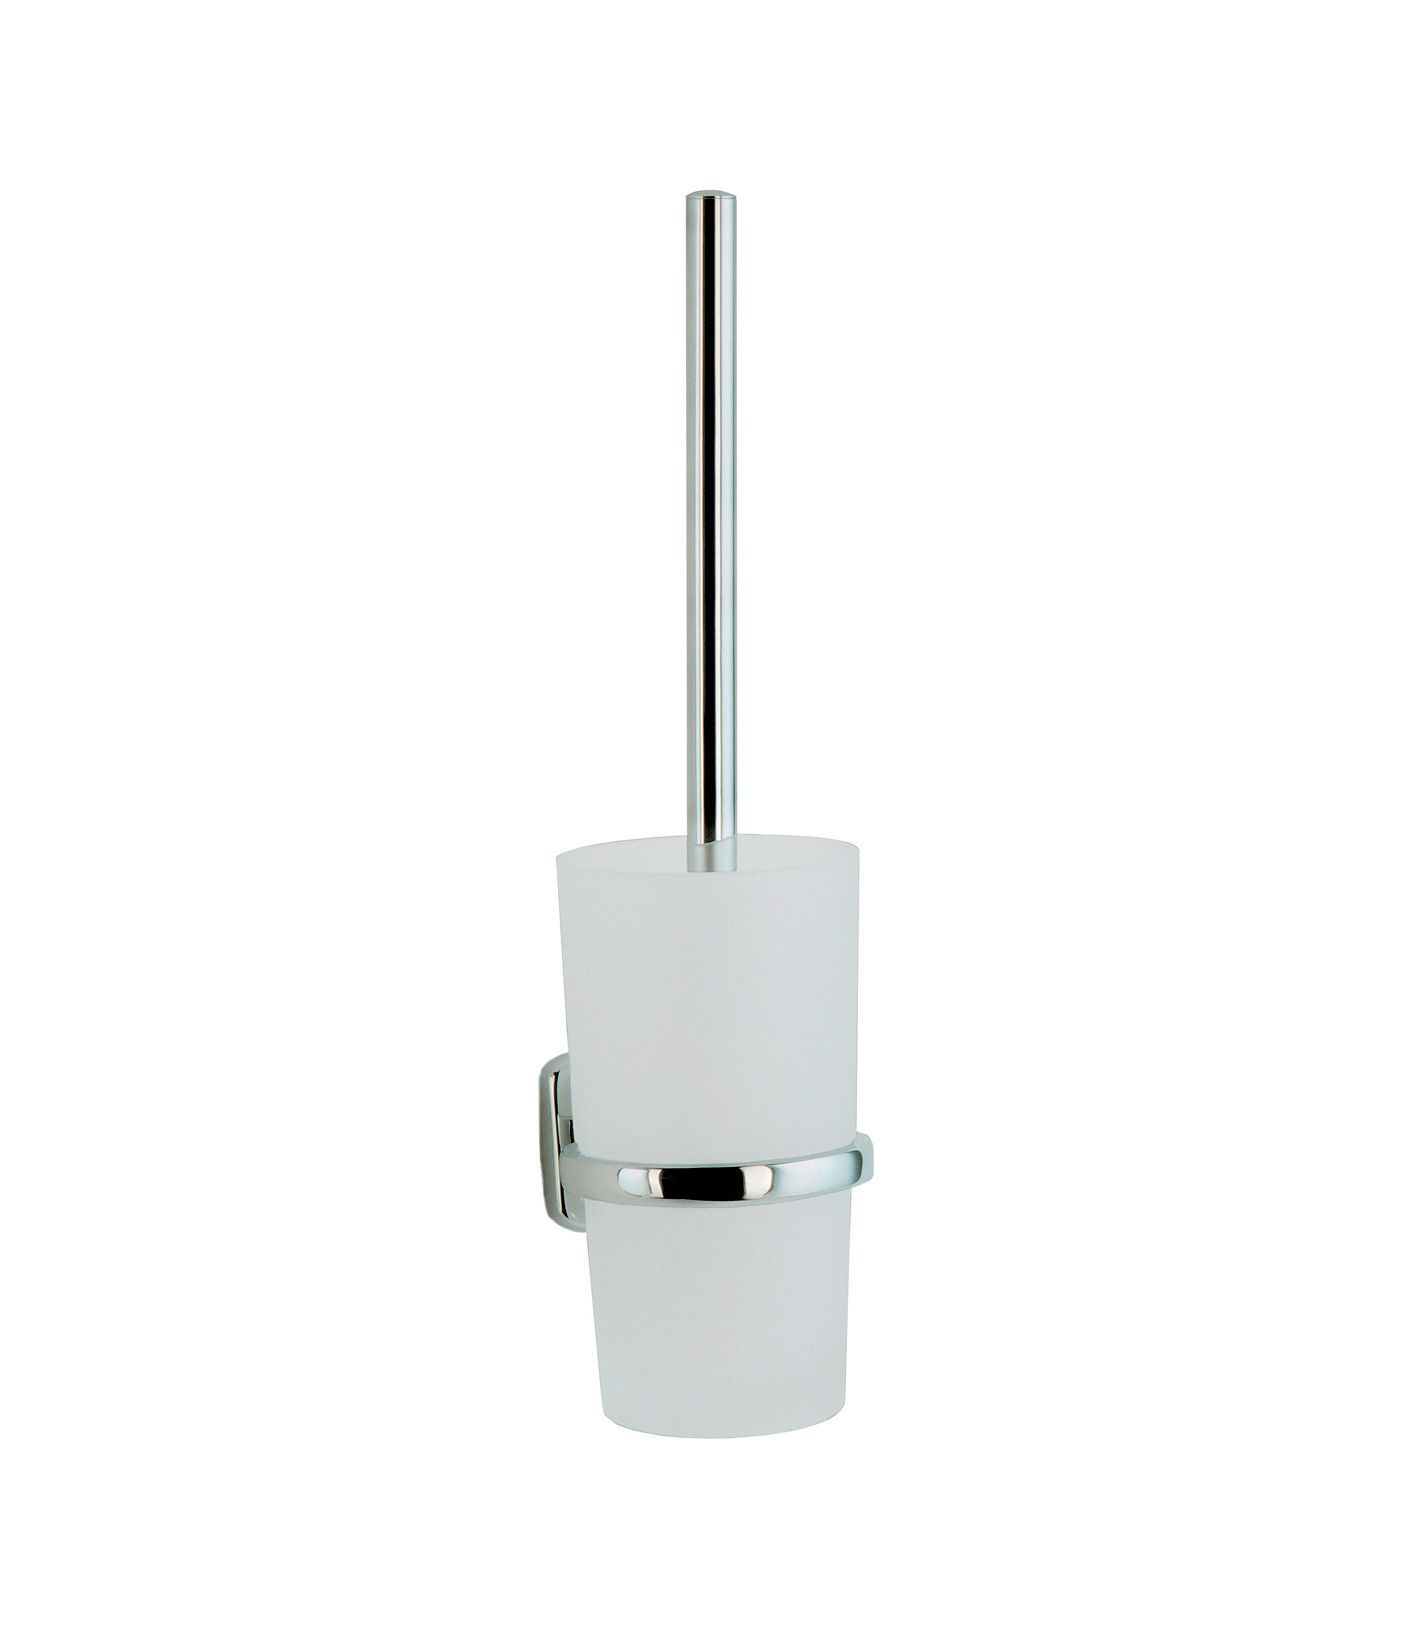 Cabin 15in H Wall Mounted Toilet Brush And Holder Wall Mounted Toilet Toilet Brush Toilet Brushes Holders